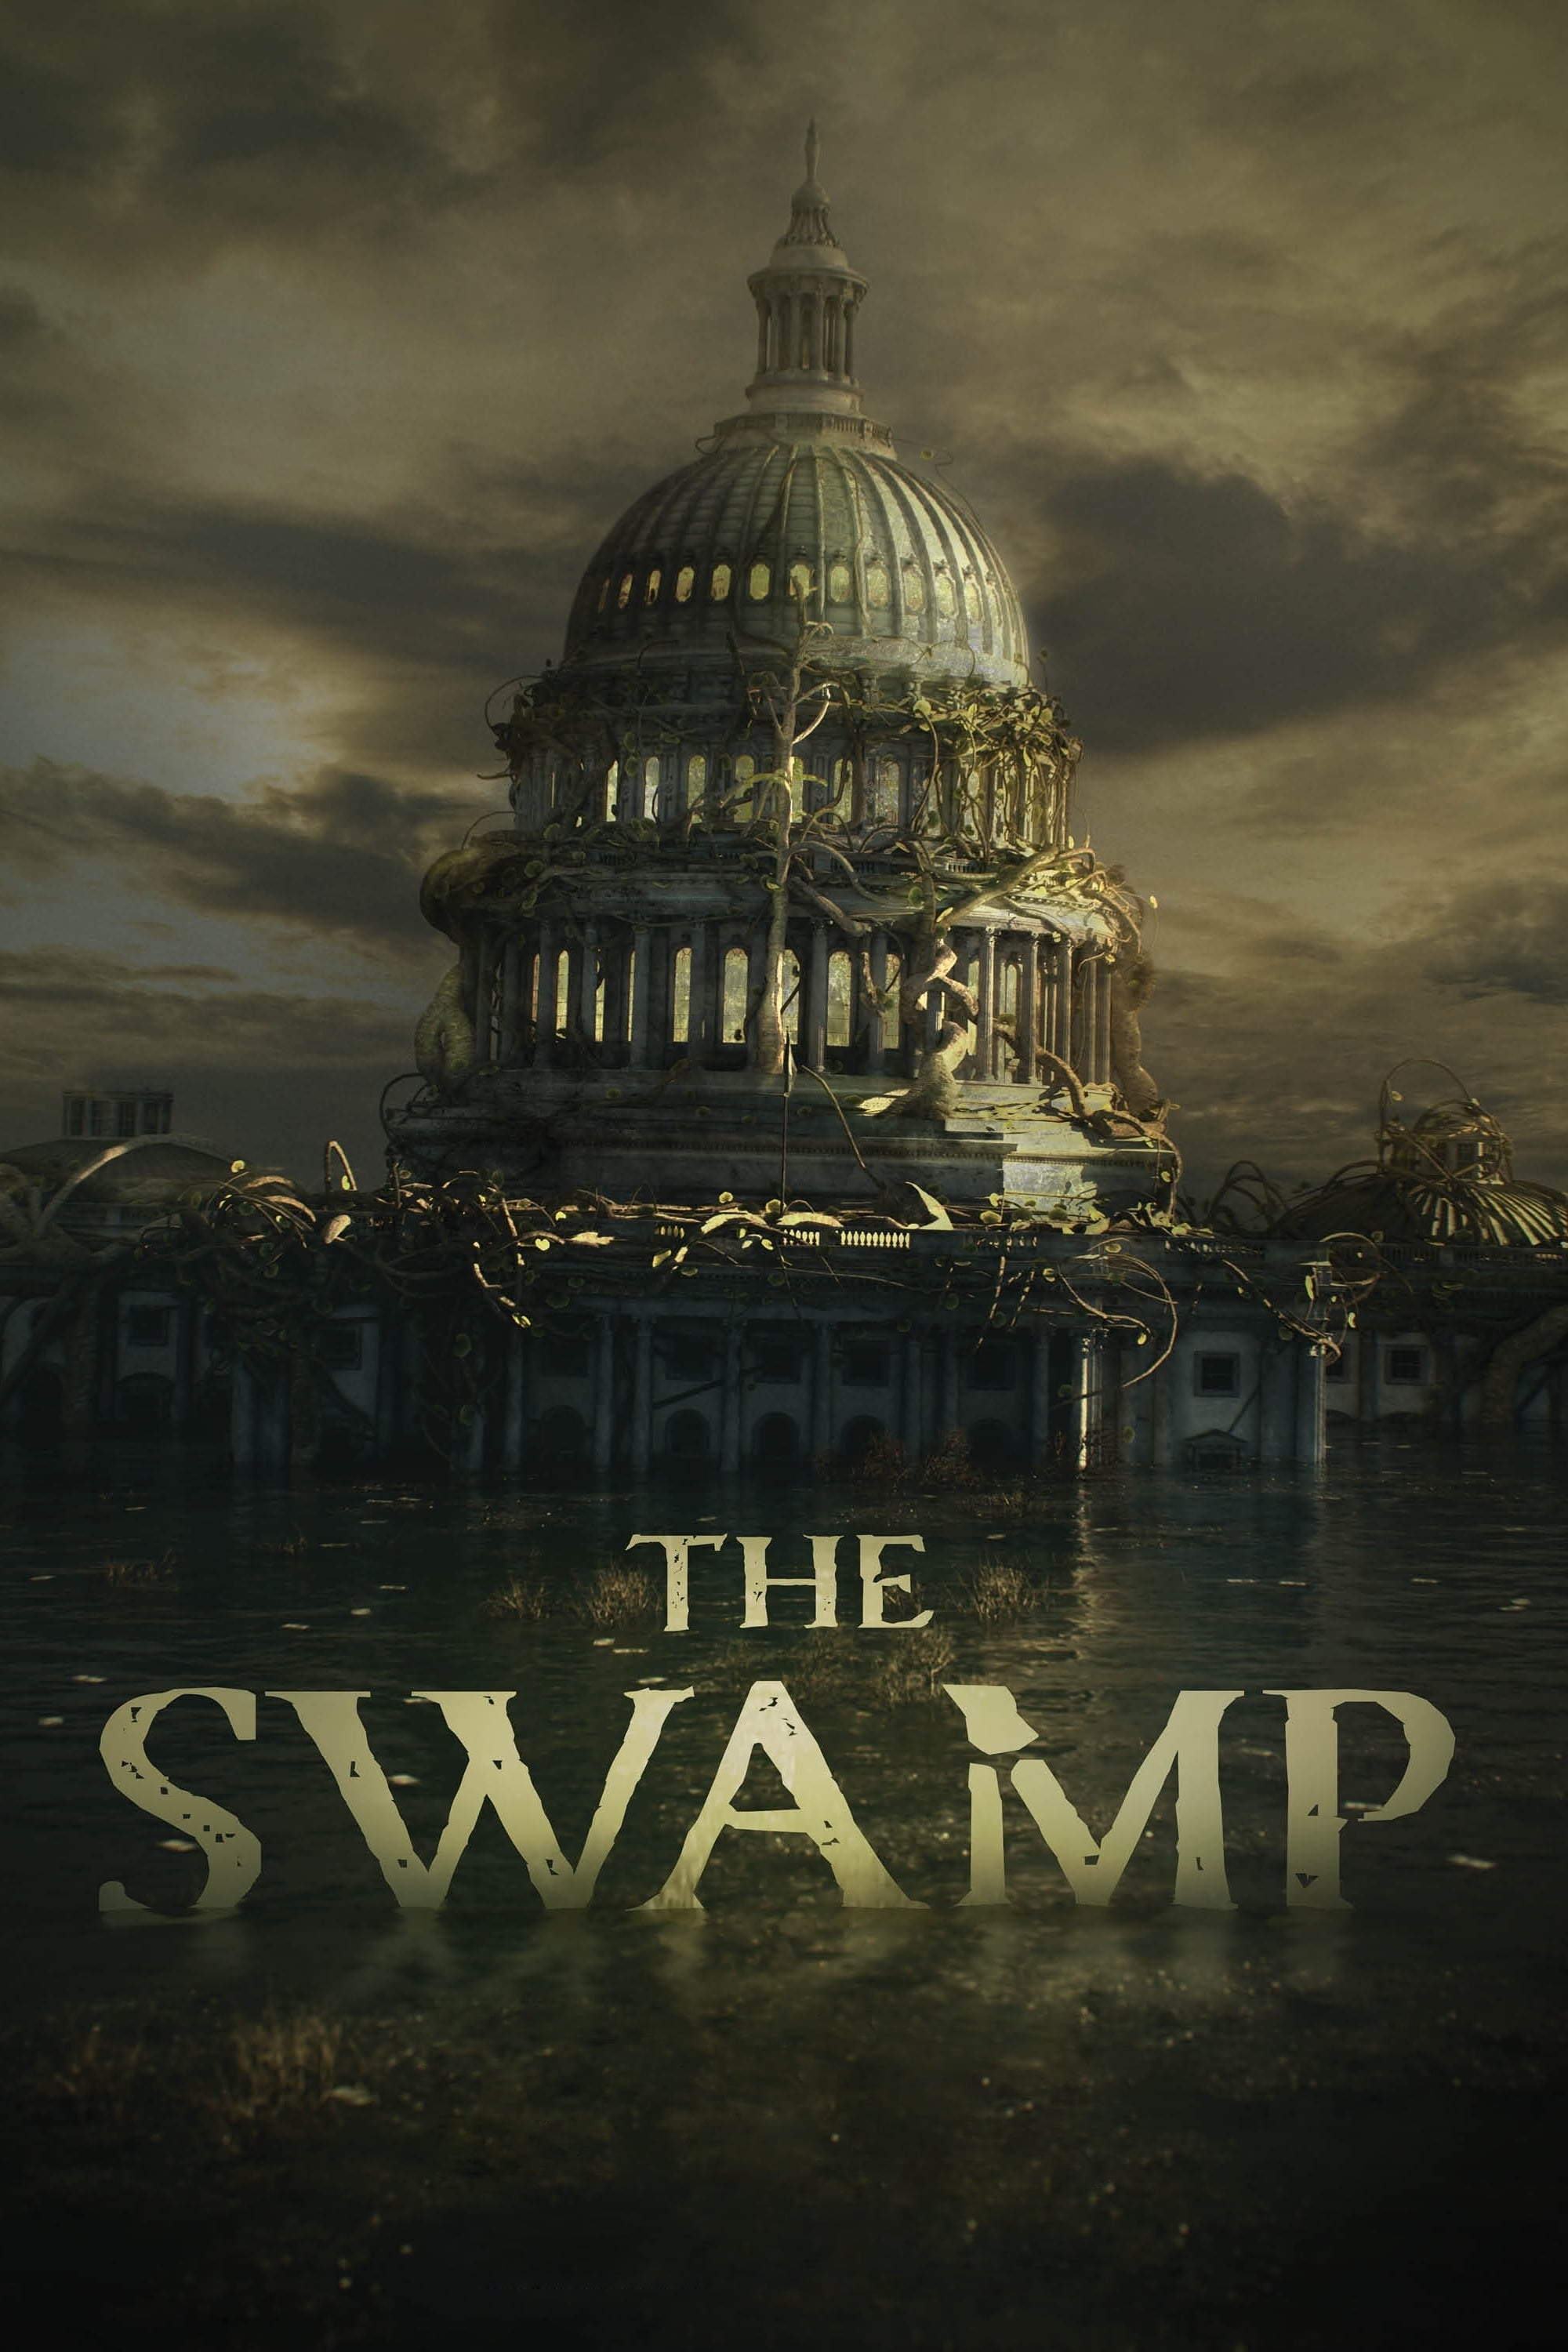 The Swamp